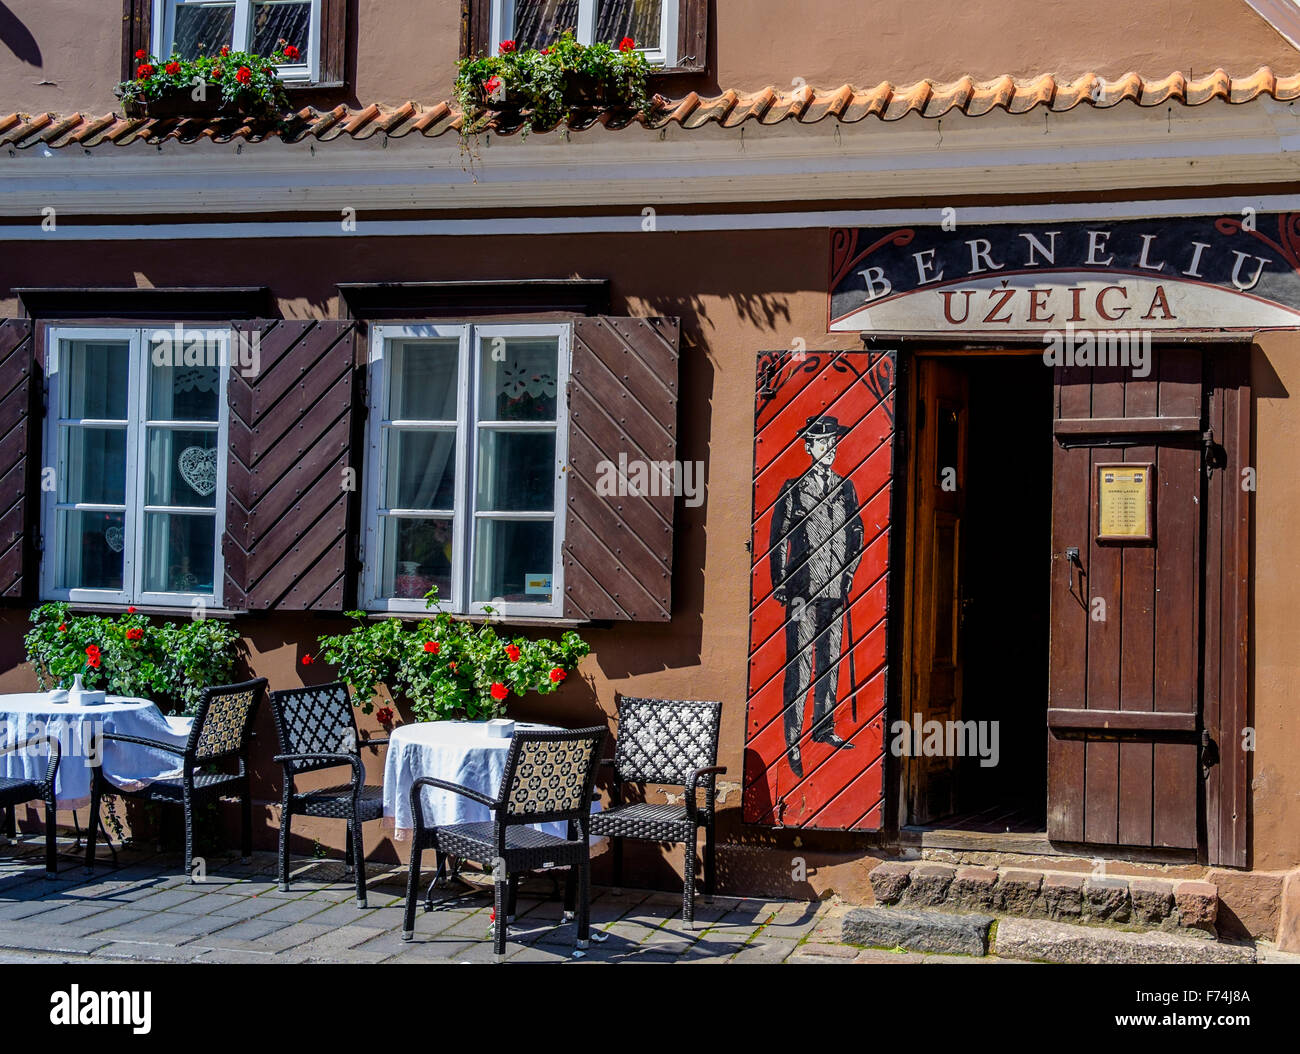 Berneliu Uzeiga serving traditional Lithuania dishes in Old Town Kuanas - Stock Image